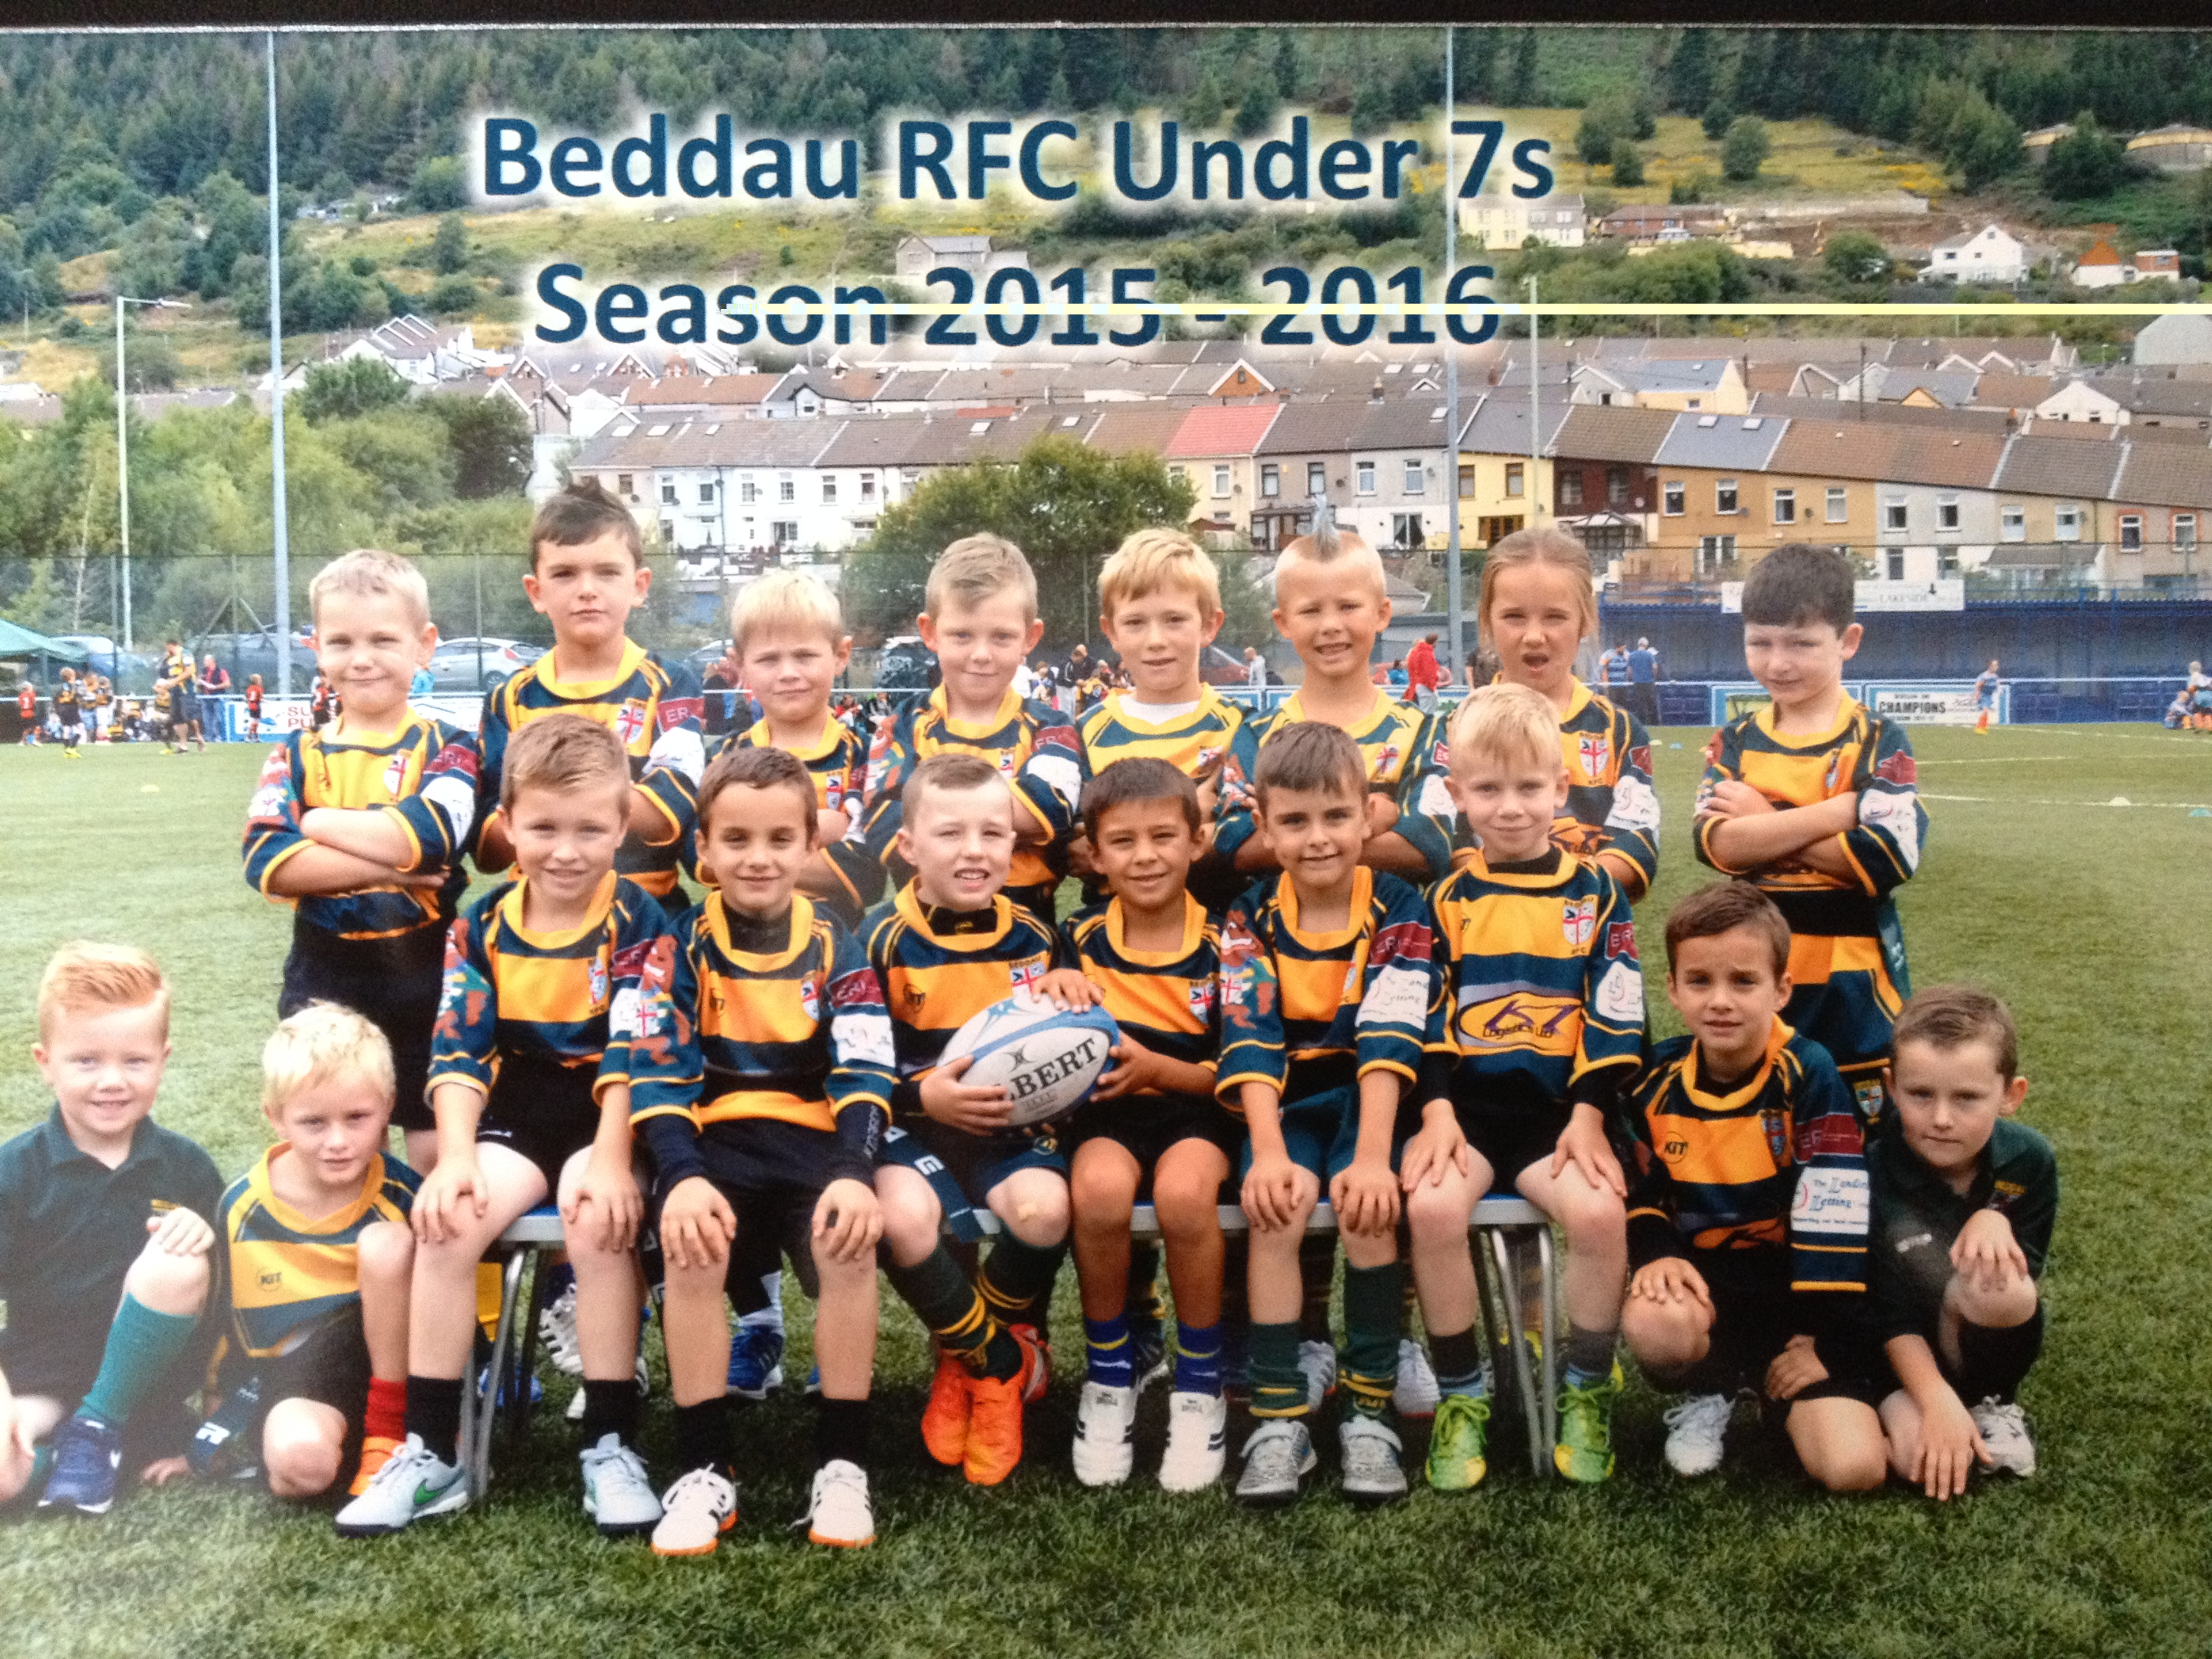 Beddau RFC under 7's